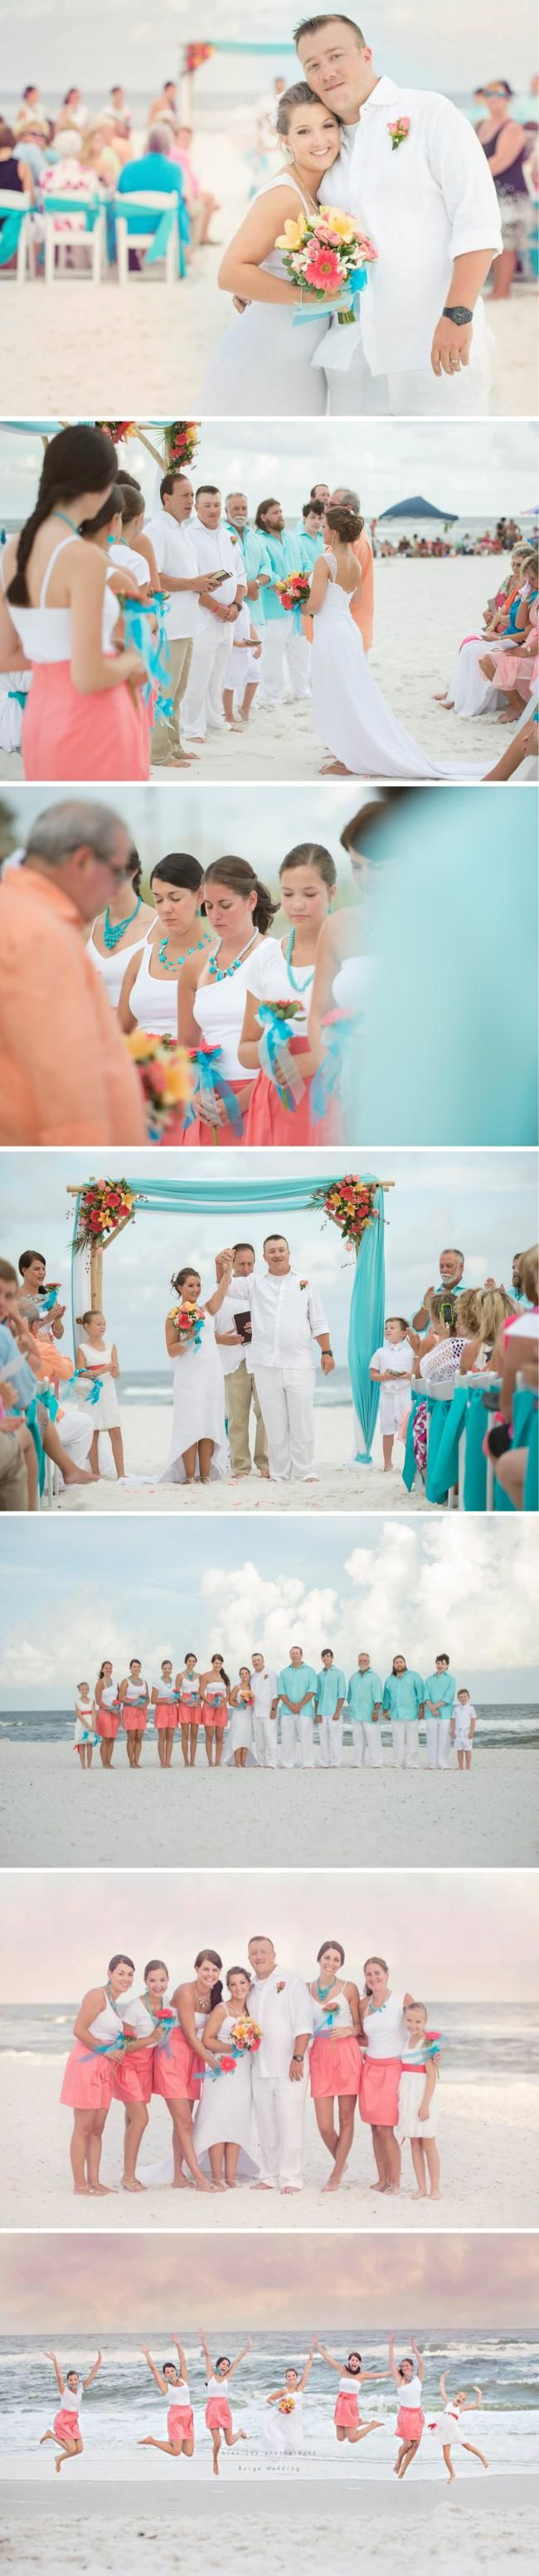 Best 25+ Coral bridesmaid skirts ideas on Pinterest | Prom ...